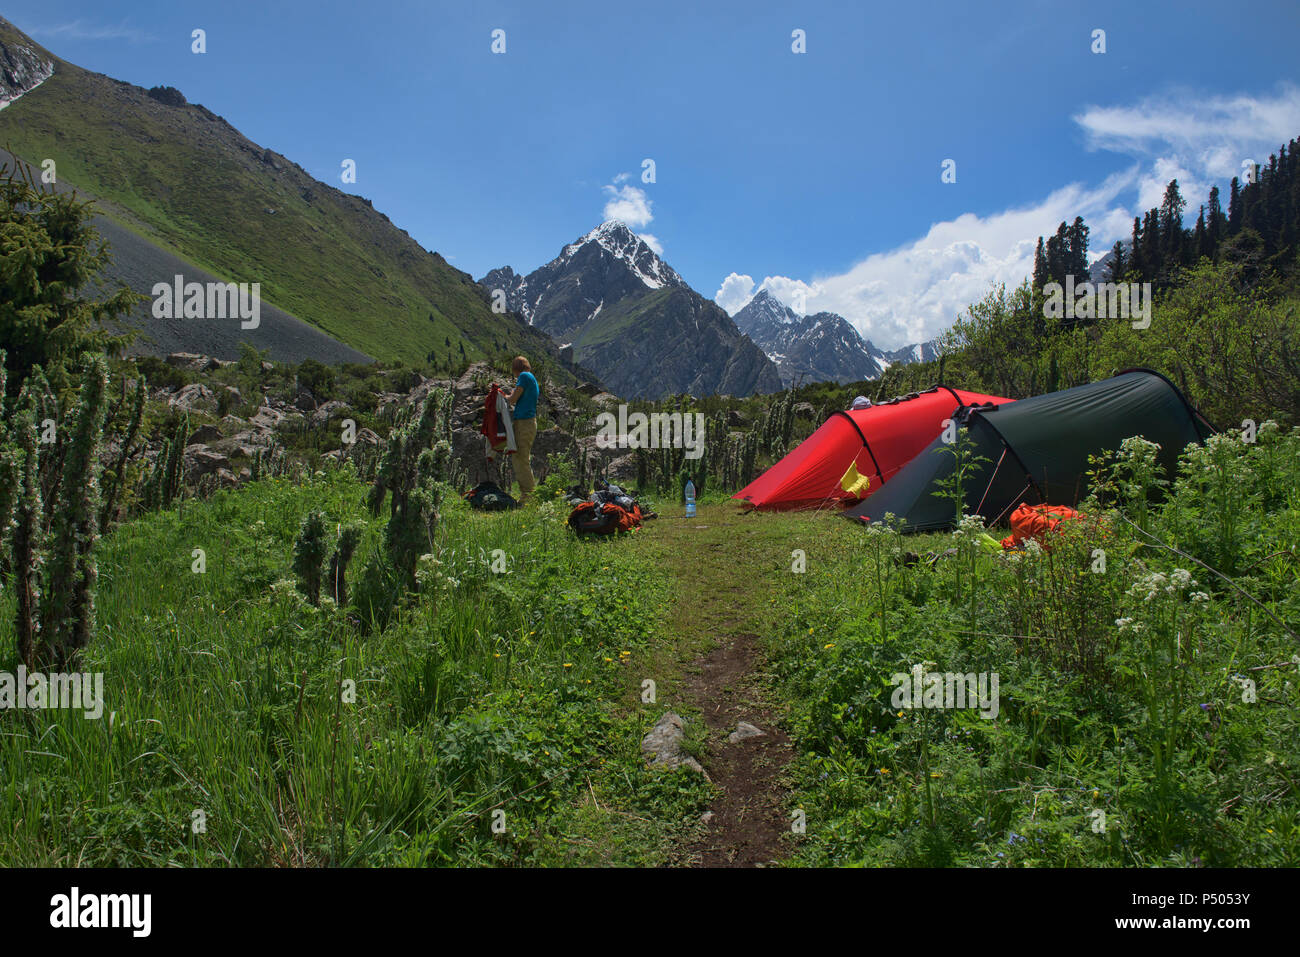 Colorful alpine camp in the Tian Shan Mountains, Karakol, Kyrgyzstan - Stock Image